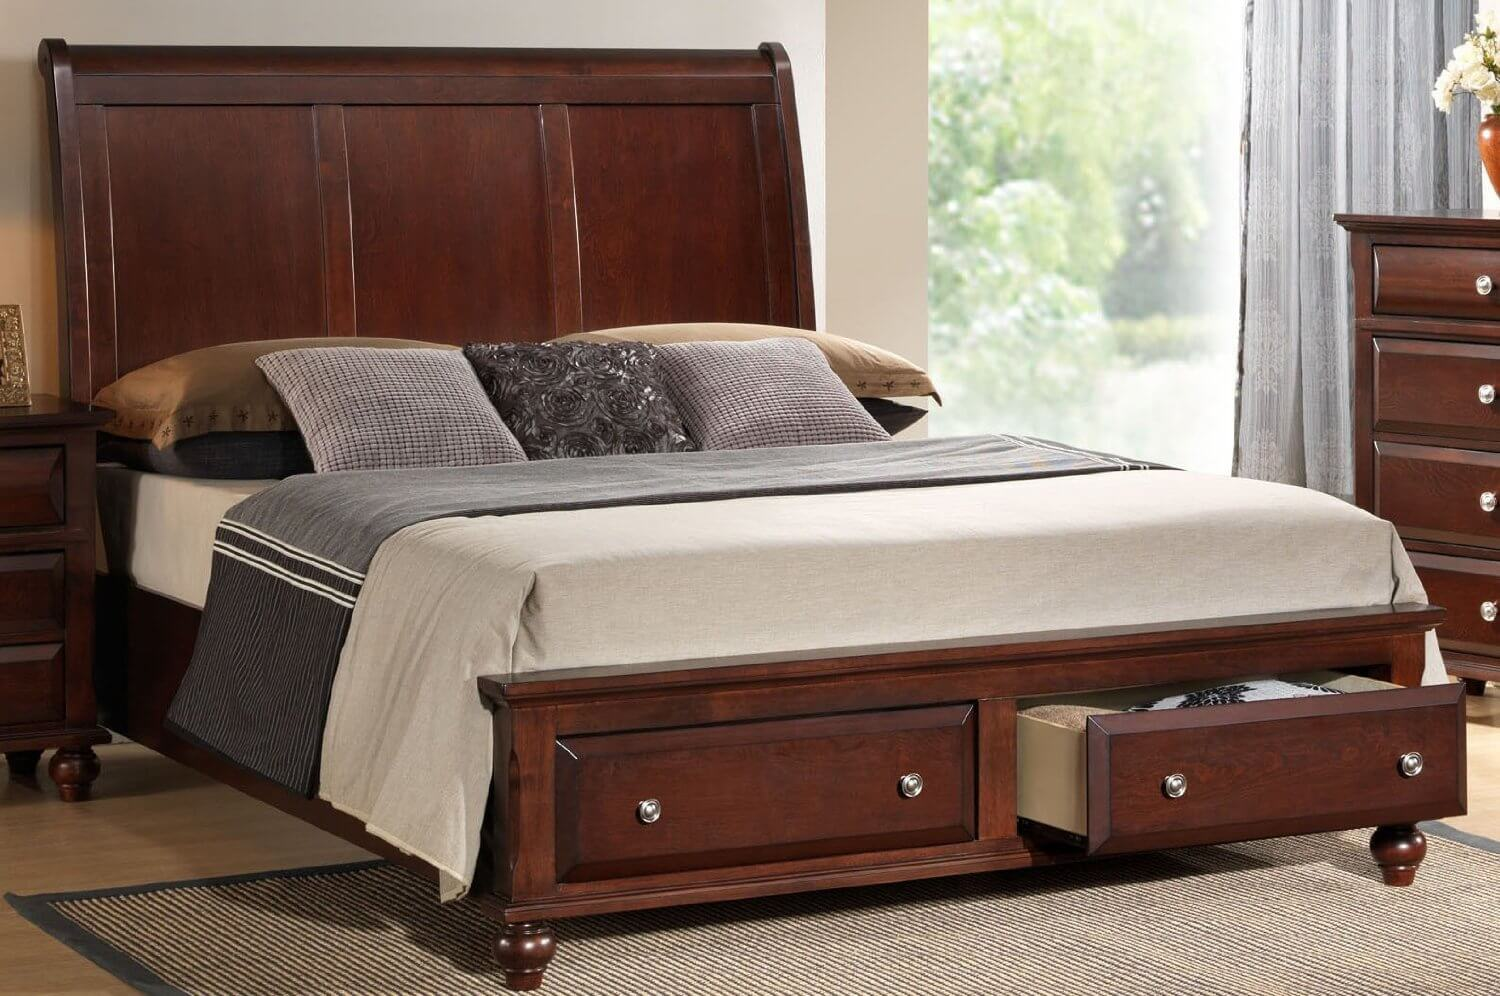 queen size bed frame with drawers underneath 25 incredible queen-sized beds with storage drawers underneath XDEYERG